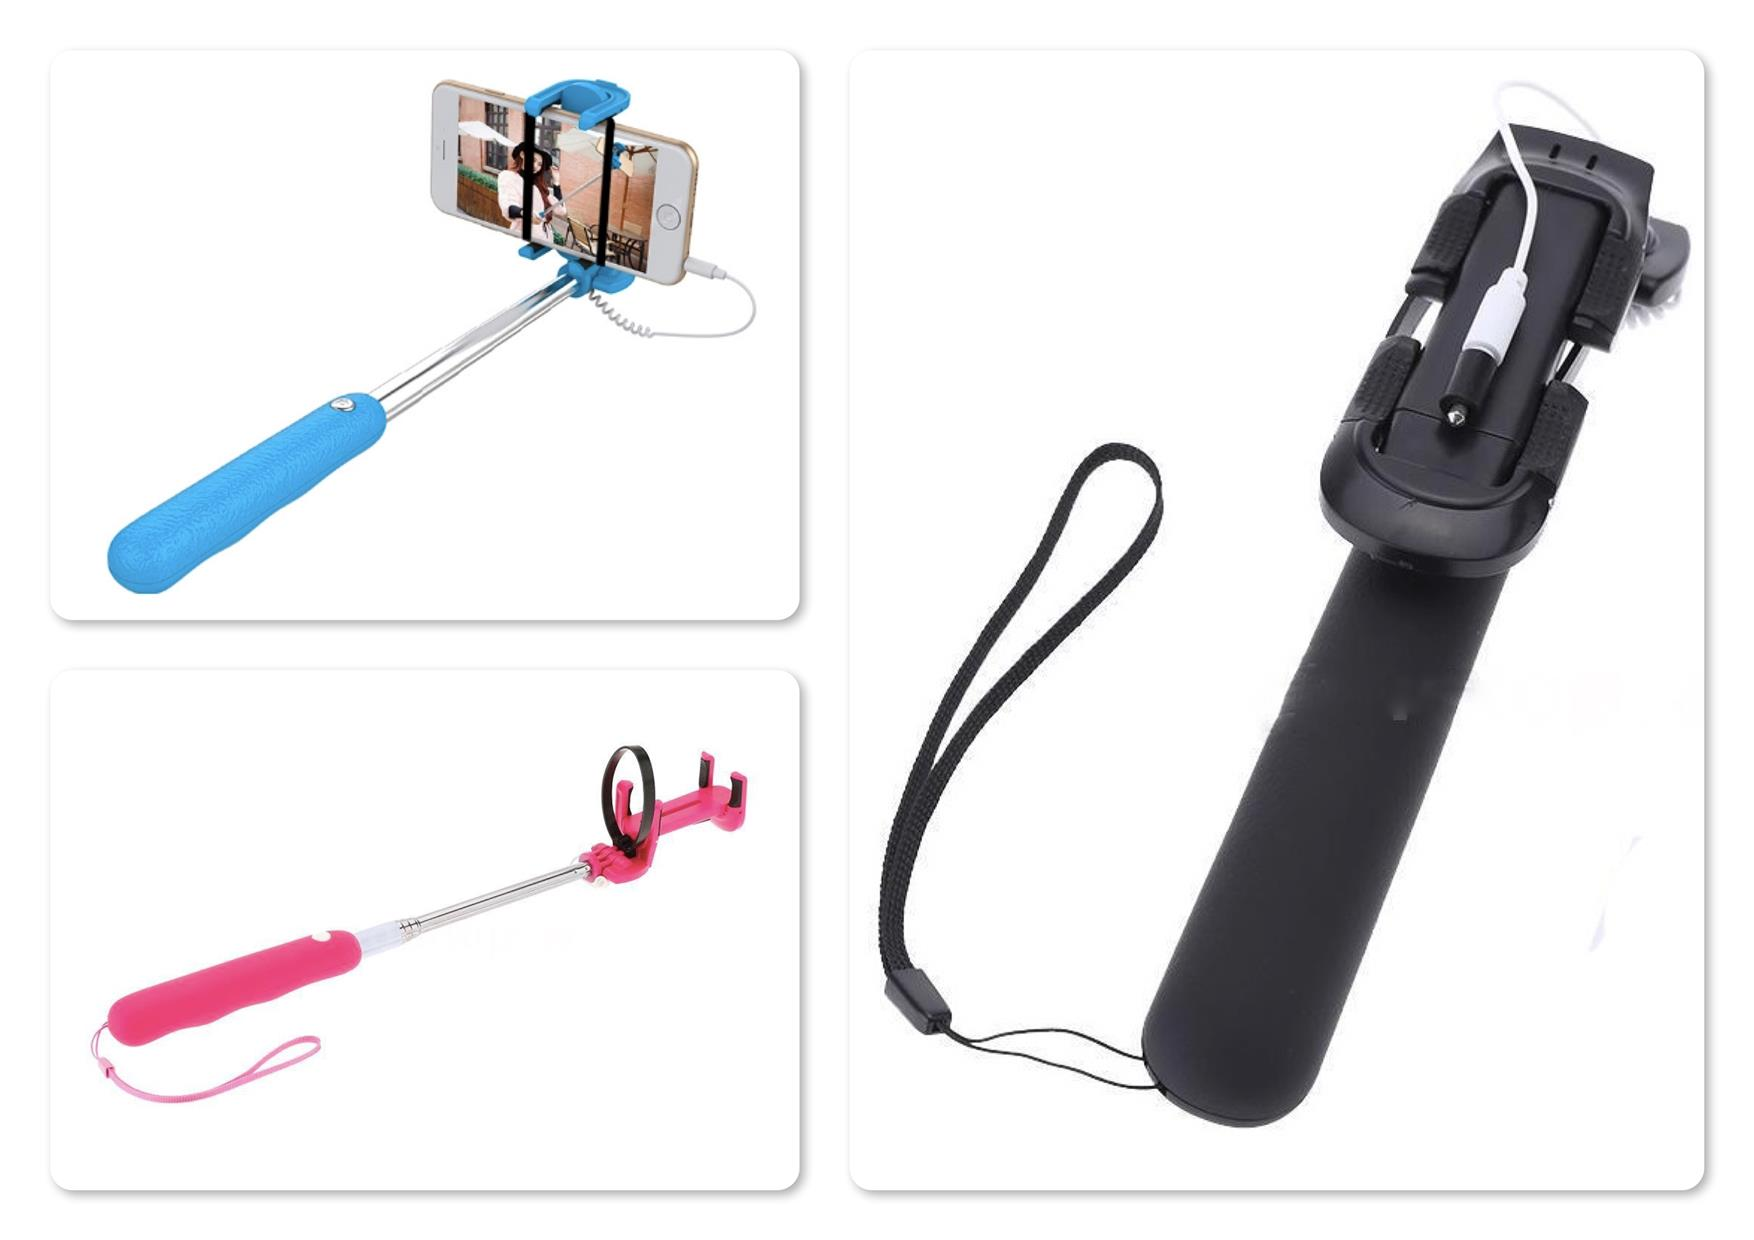 Noosy BR07 Mini Selfie Stick Monopod with Cable